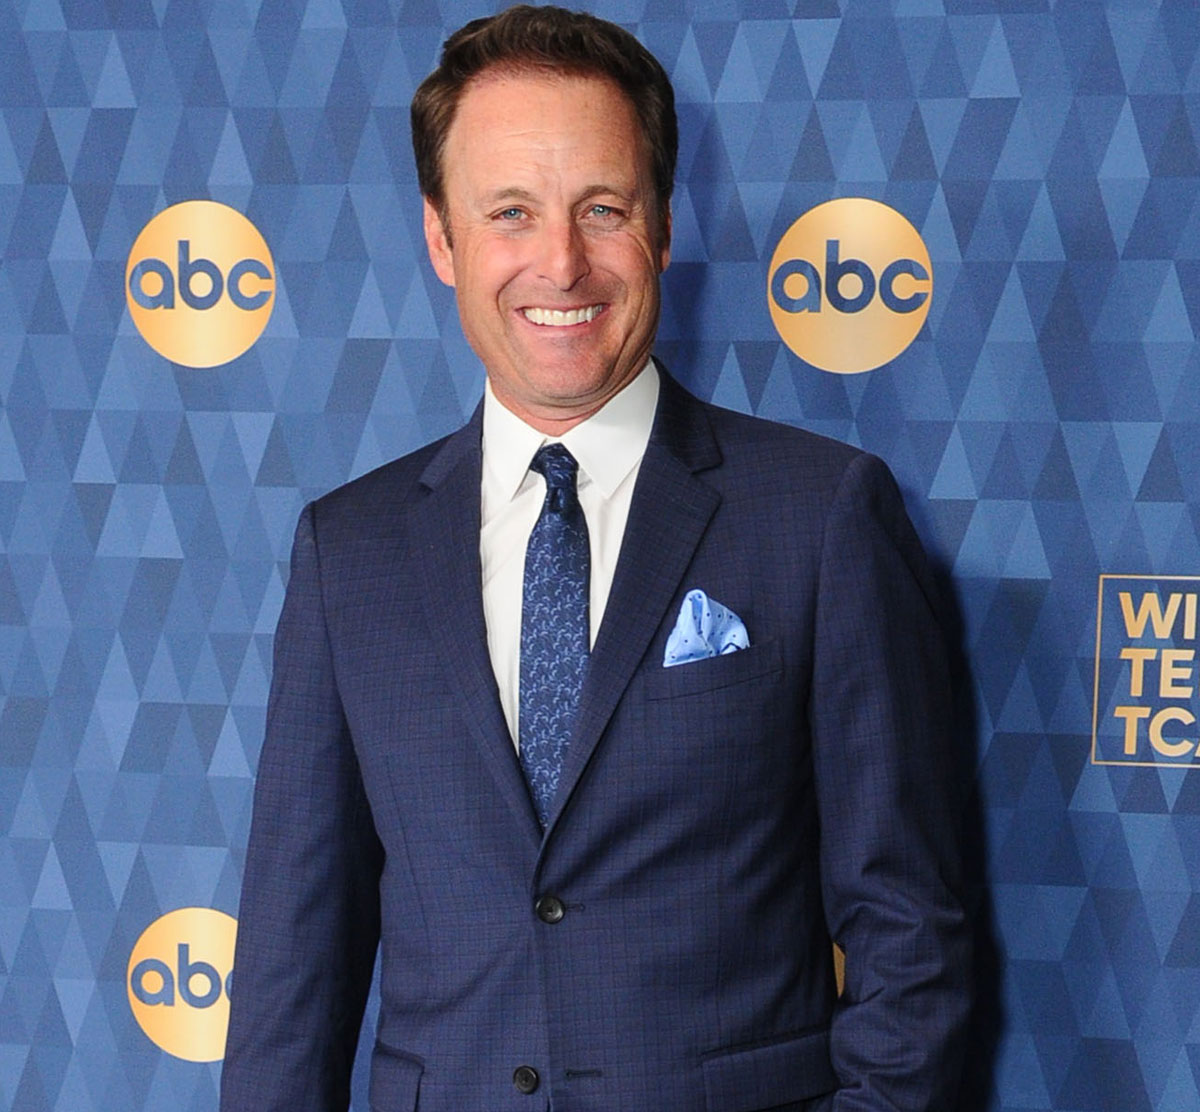 Chris Harrison Announces He's 'Stepping Aside' As Host Of The Bachelor Amid Show's Current Racism Controversy